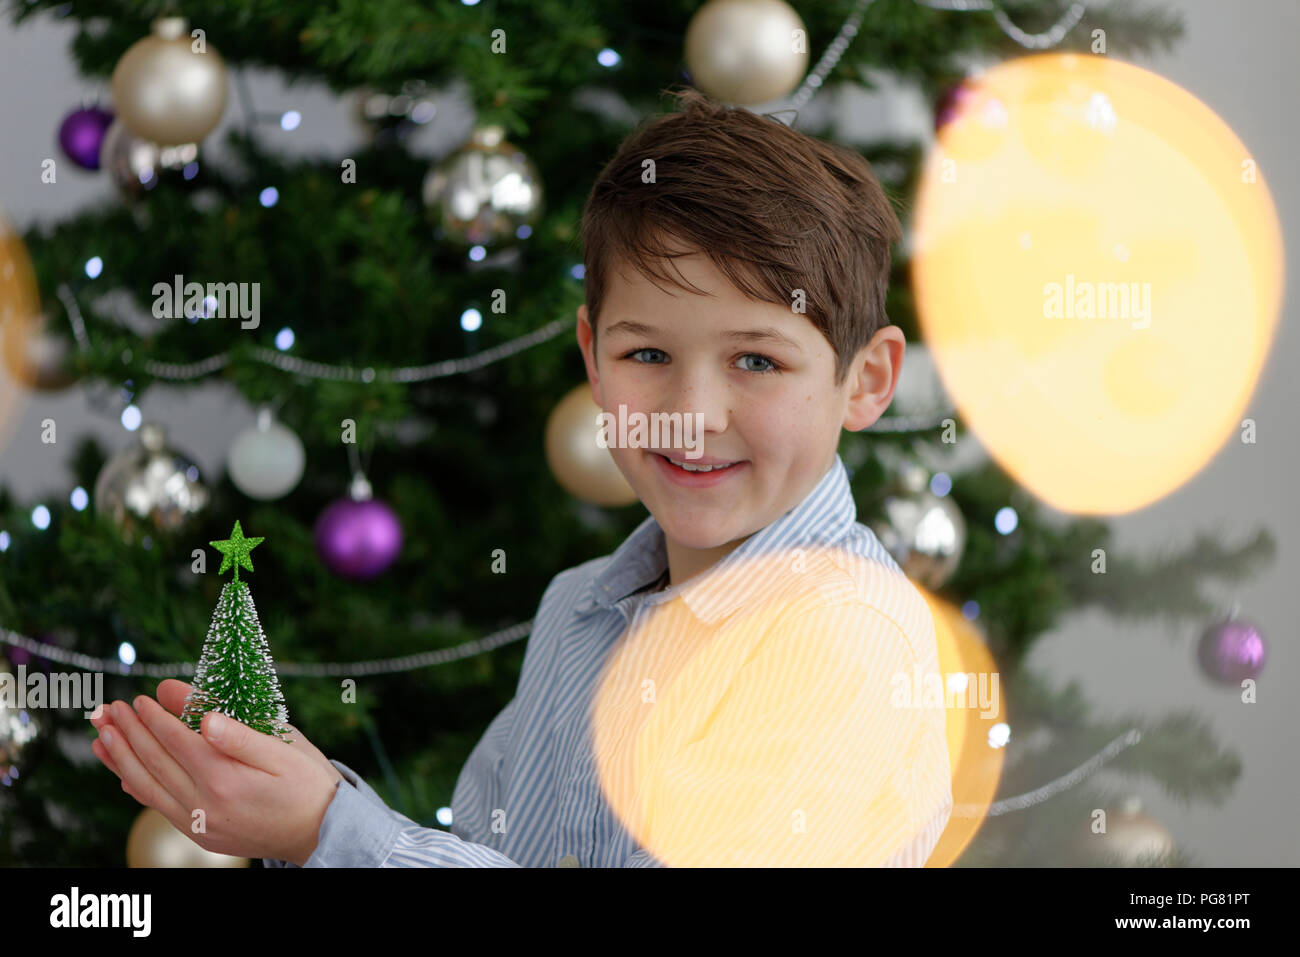 Portrait of smiling little boy with miniature Christmas tree - Stock Image